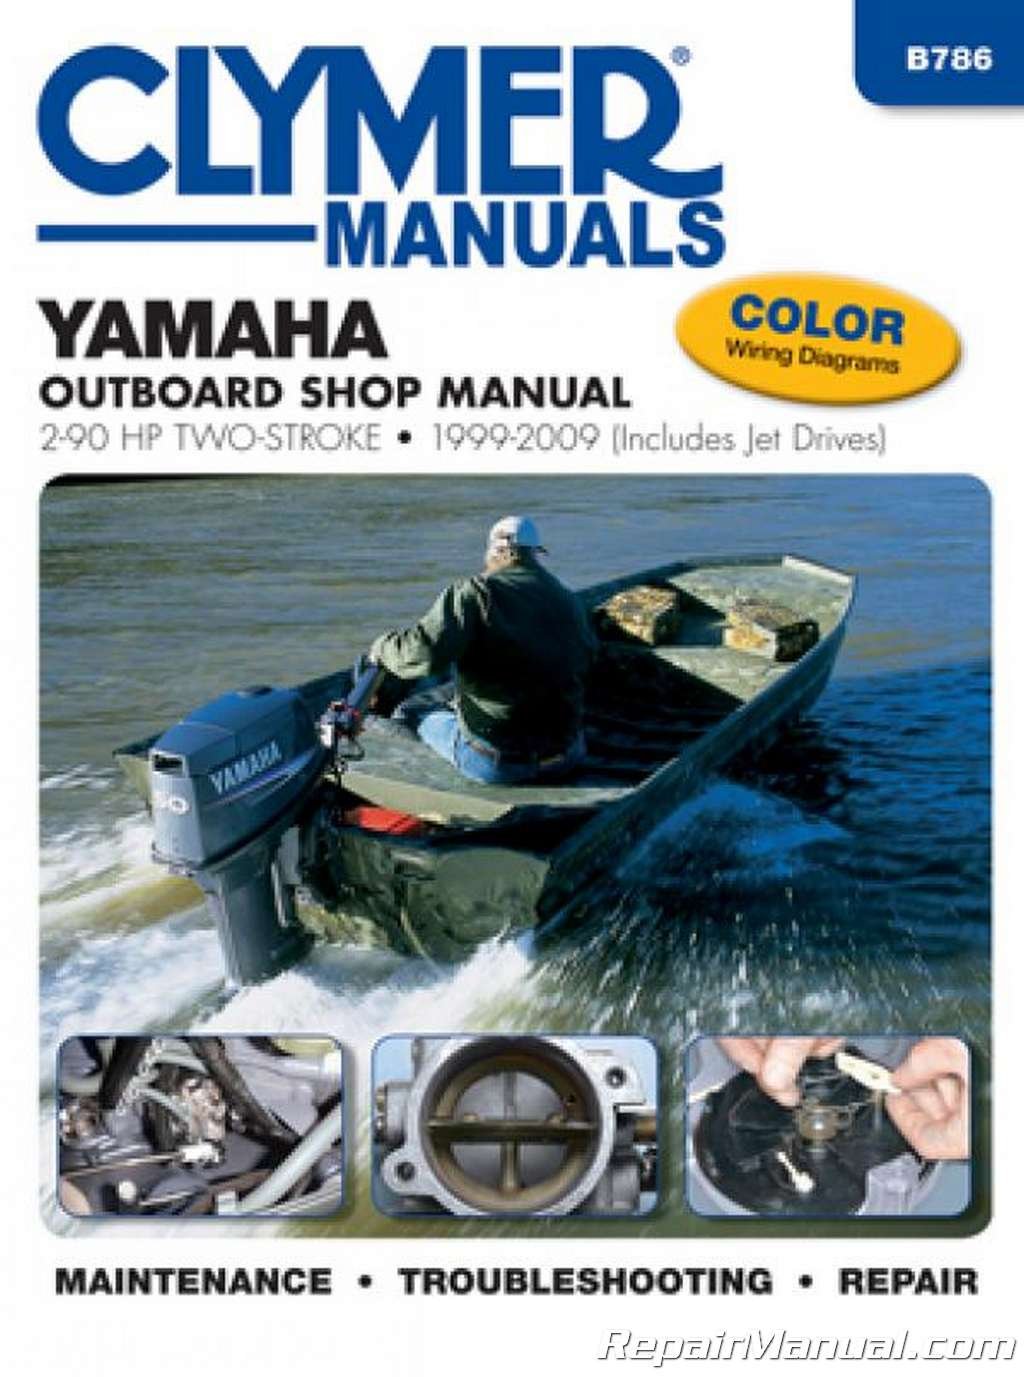 Clymer Yamaha Outboards 2 90 Hp 1999 2009 Stroke Boat Repair Manual Outboard Carburetor Diagram Together With 4